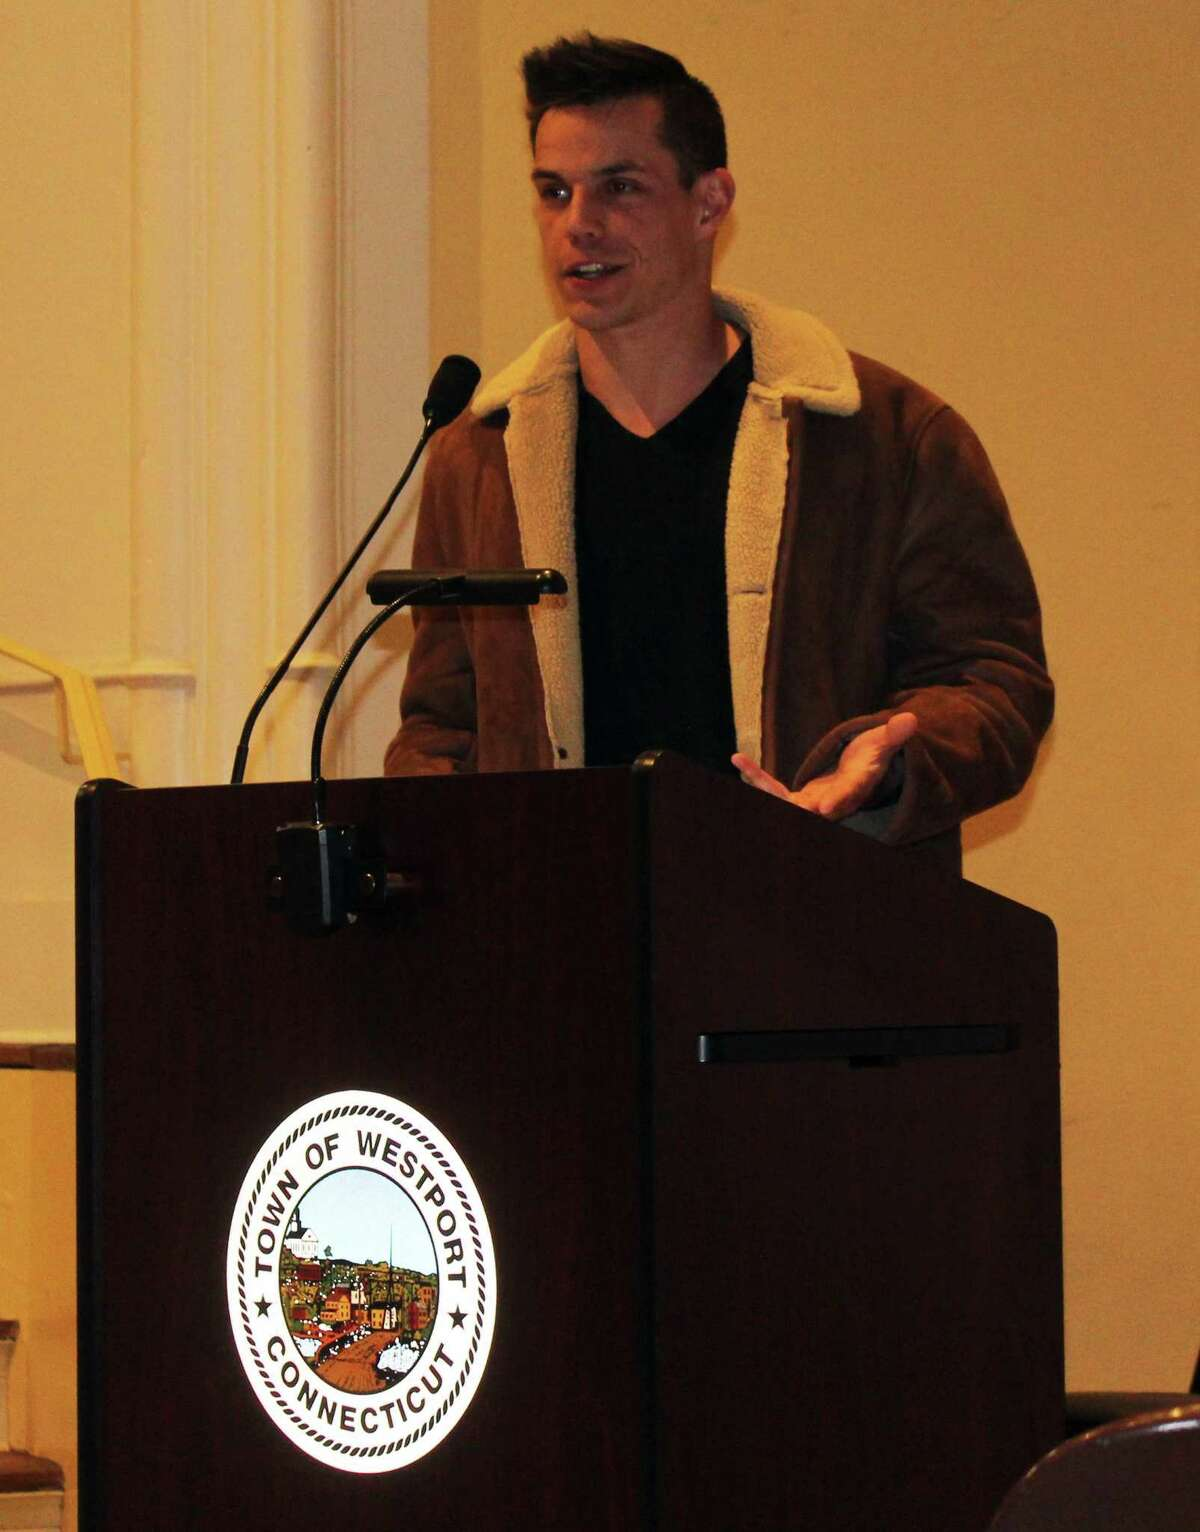 Westport Representative Town Meeting (RTM) member Andrew Colabella proposed a ban single use plastics and styrofoam at the March 5 RTM meeting.